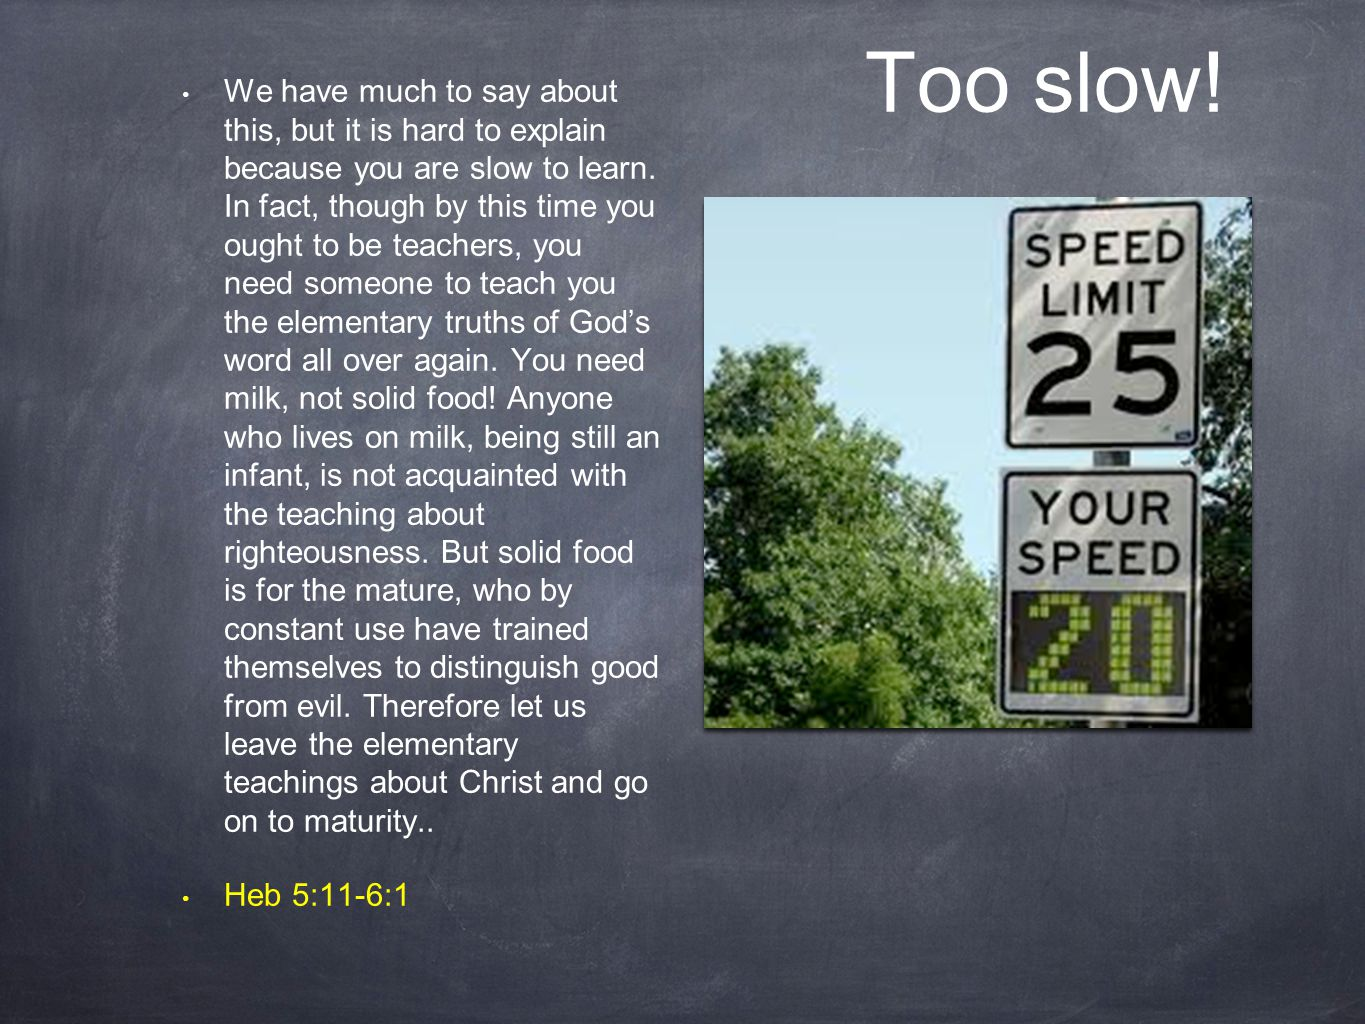 Too slow.We have much to say about this, but it is hard to explain because you are slow to learn.